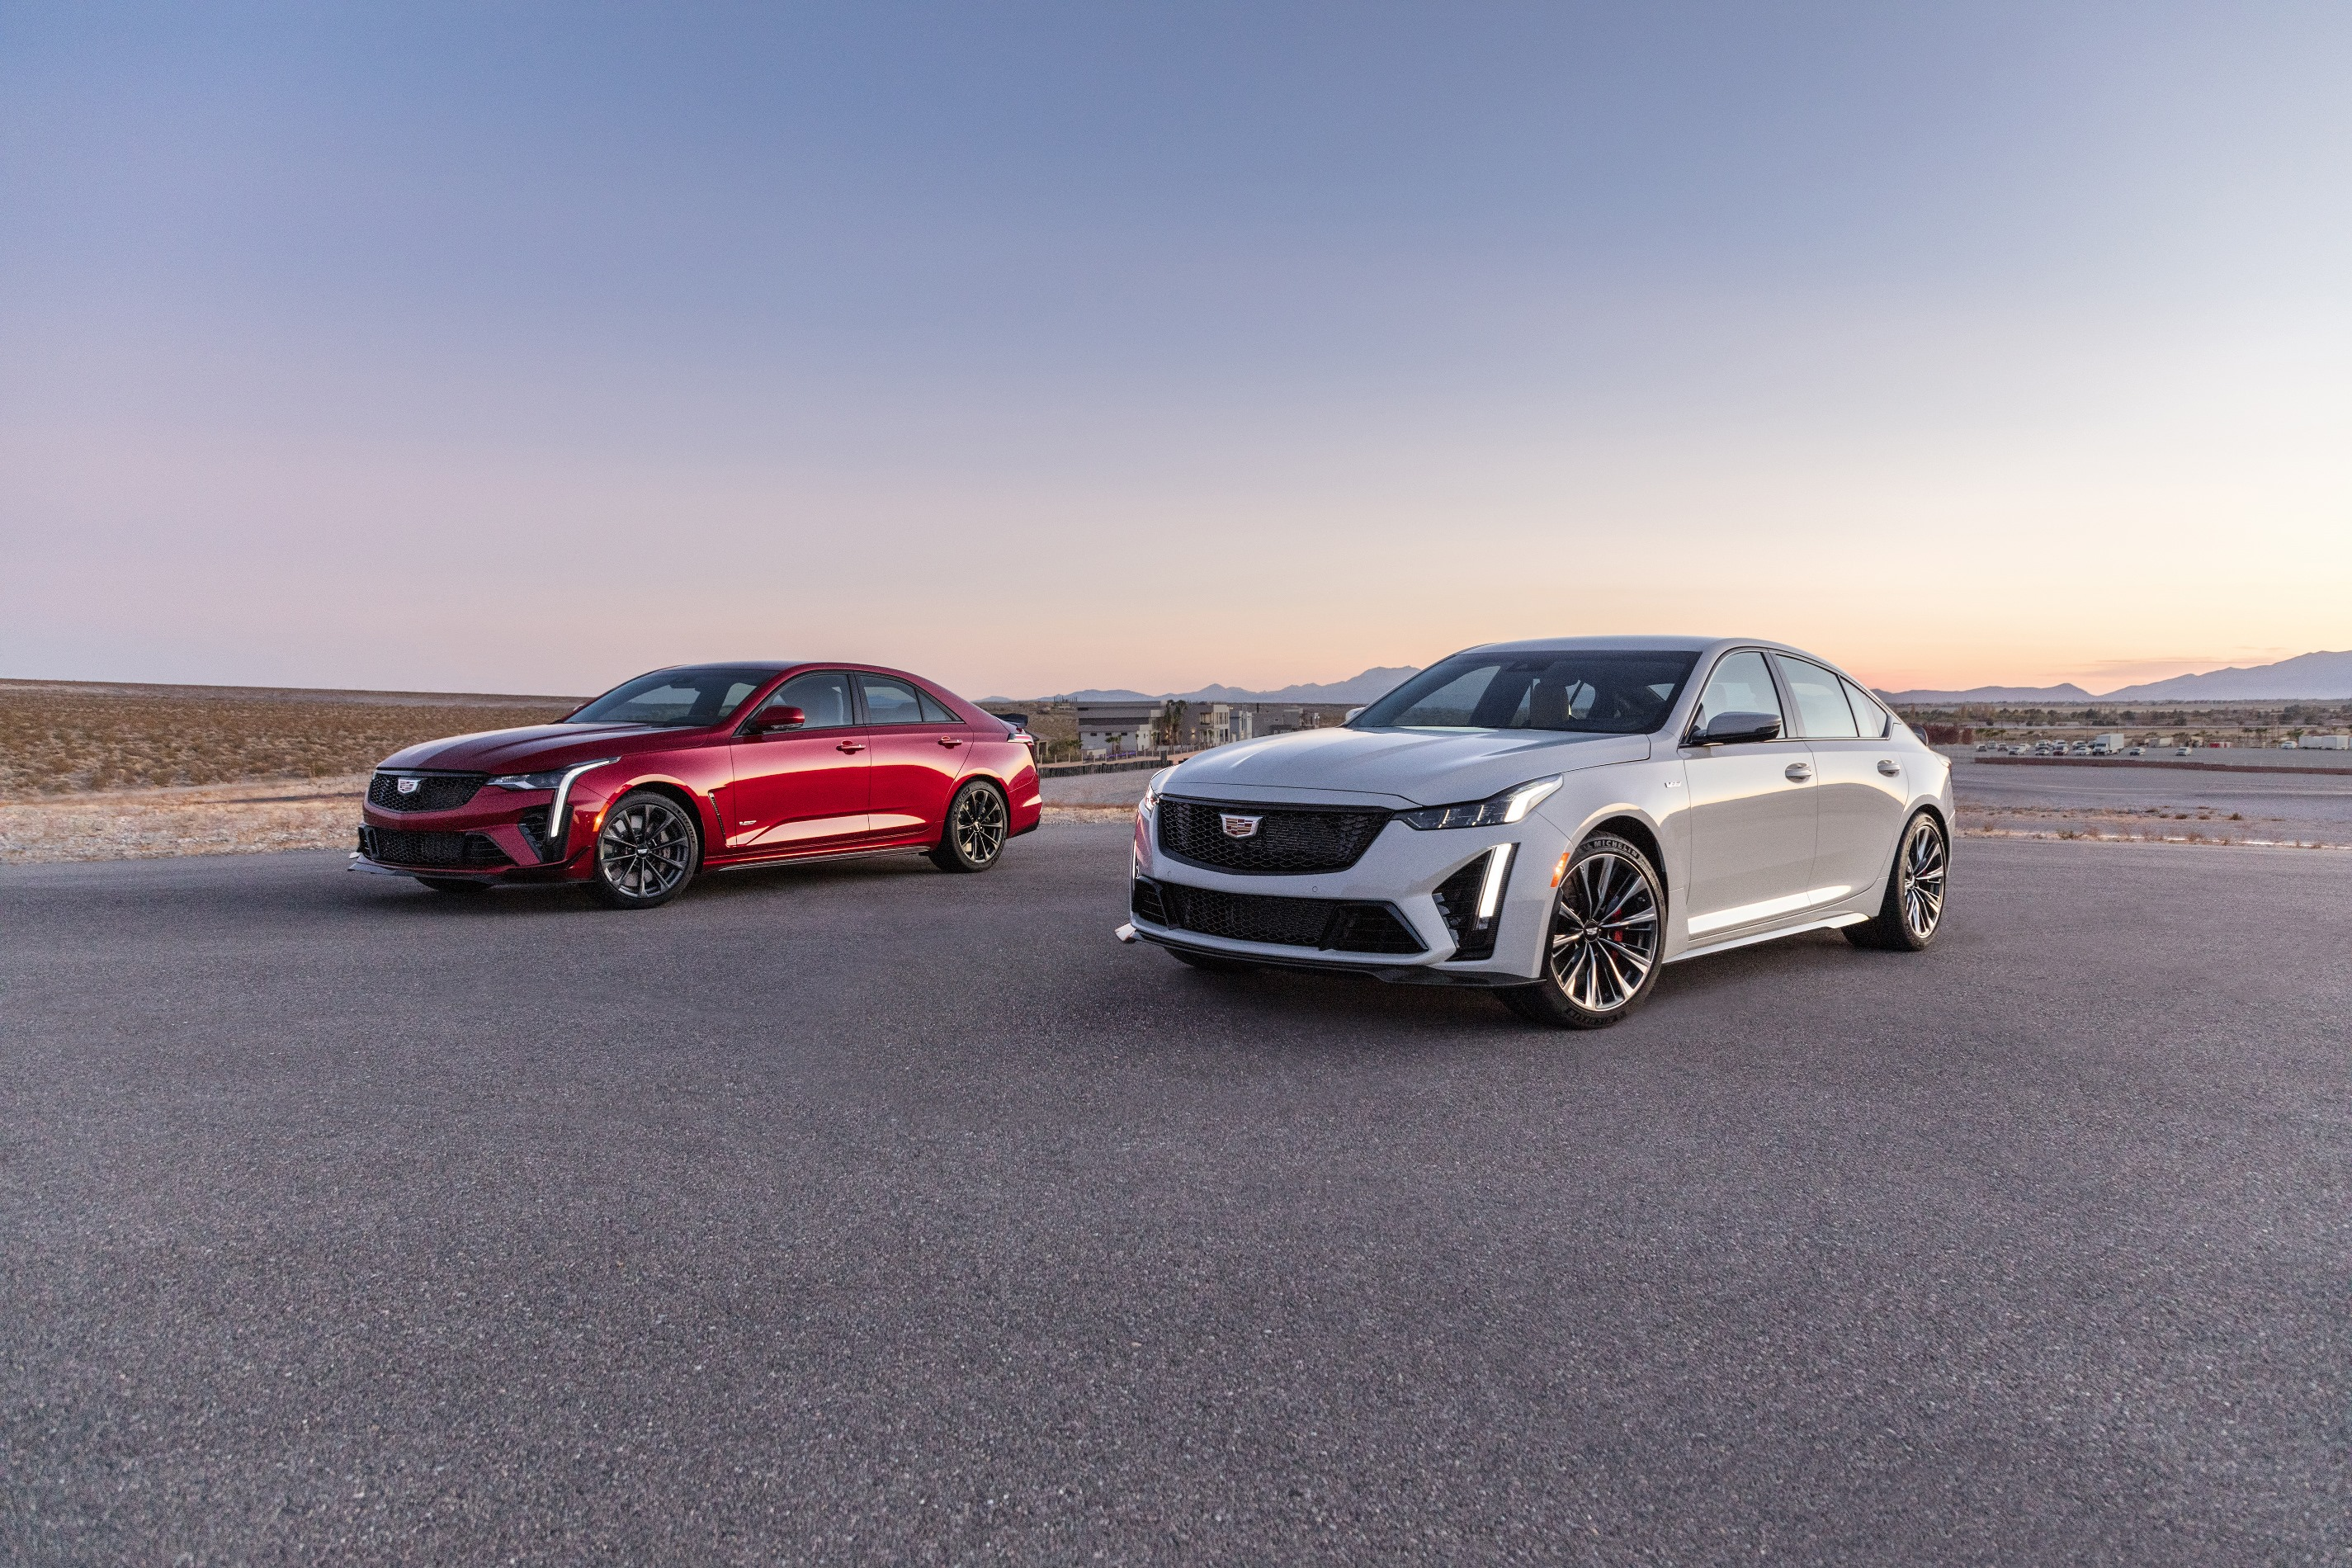 Cadillac Blackwing Debuts Or As We're Calling It The Audi RS7 TRIBUTE